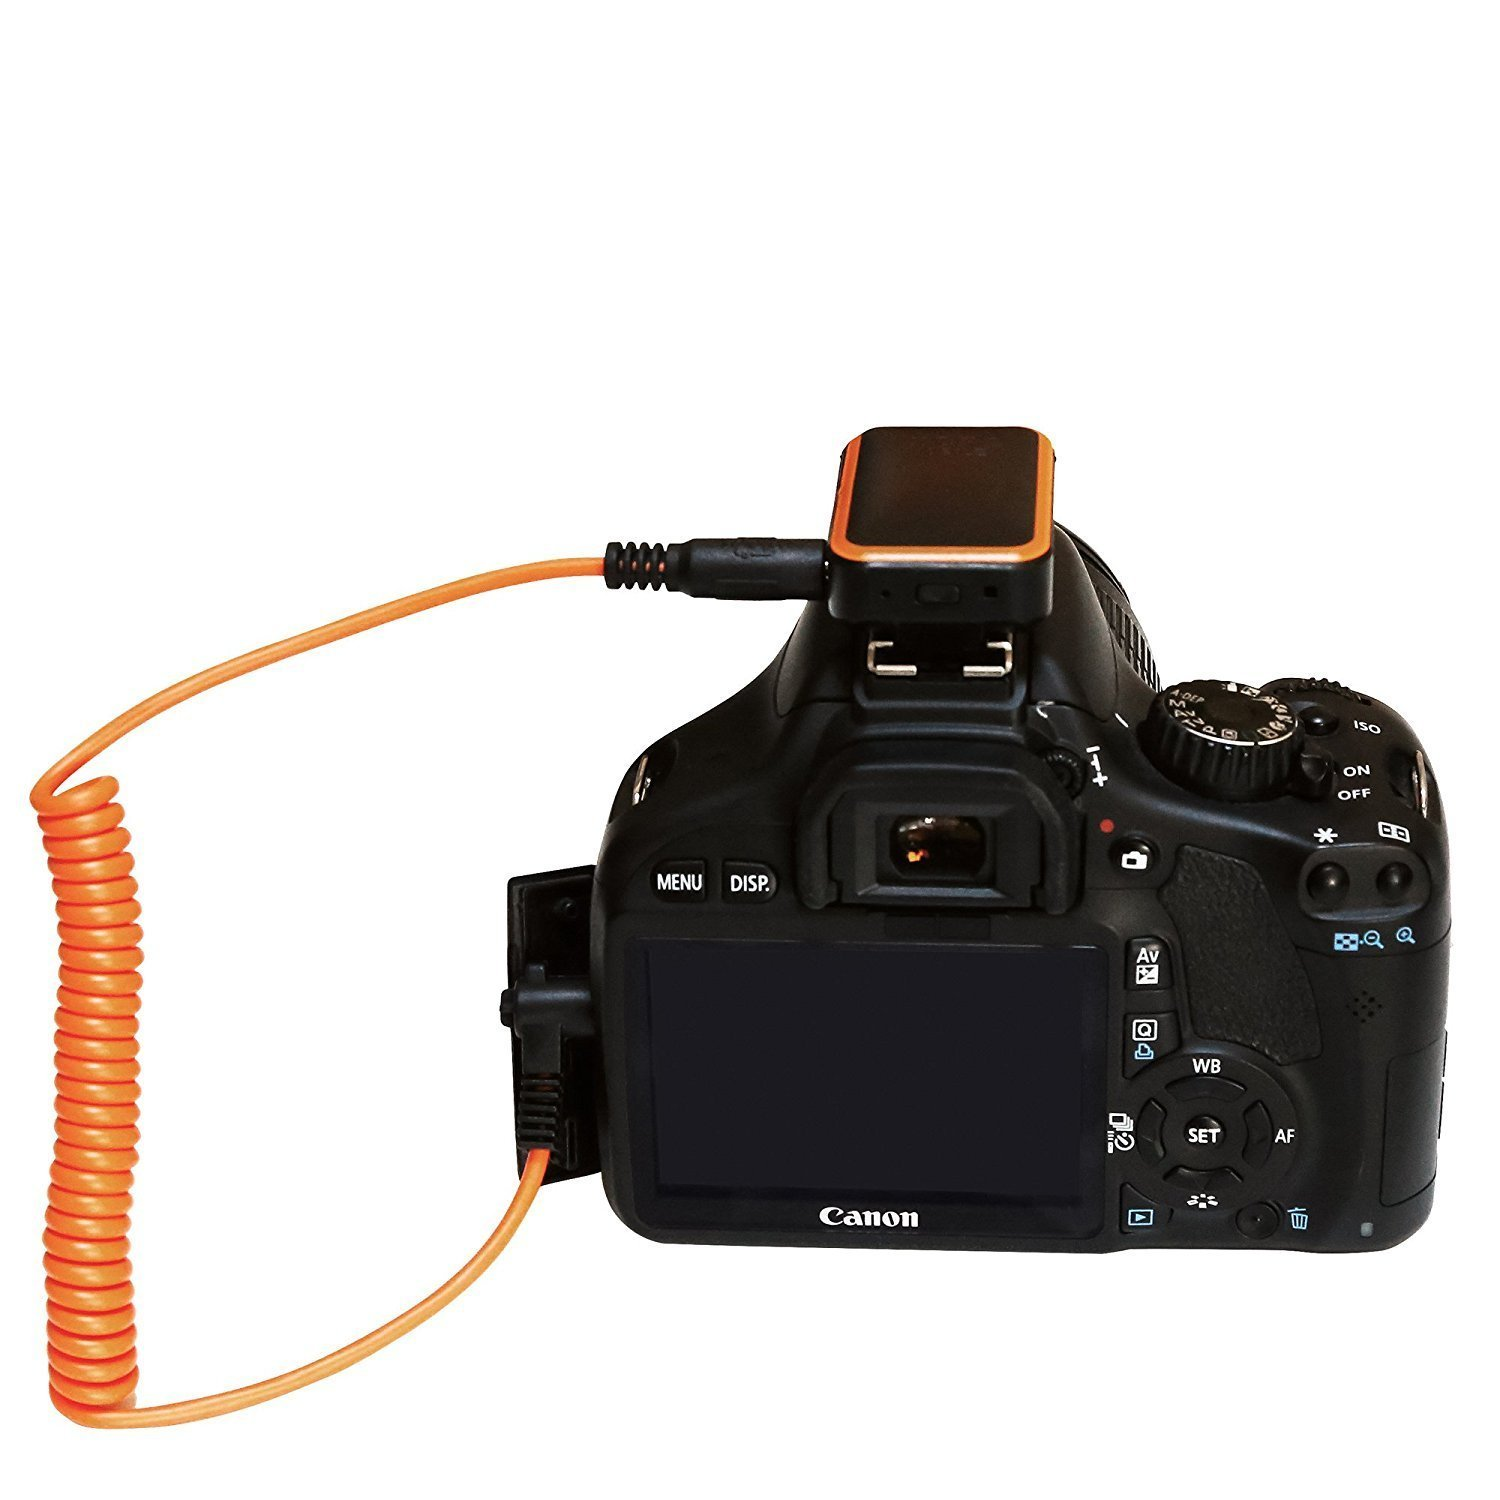 MIOPS Mobile Remote Programmable Trigger for DSLR or Mirrorless Cameras (iOS and Android) - N1 Cable for Nikon by MIOPS (Image #5)